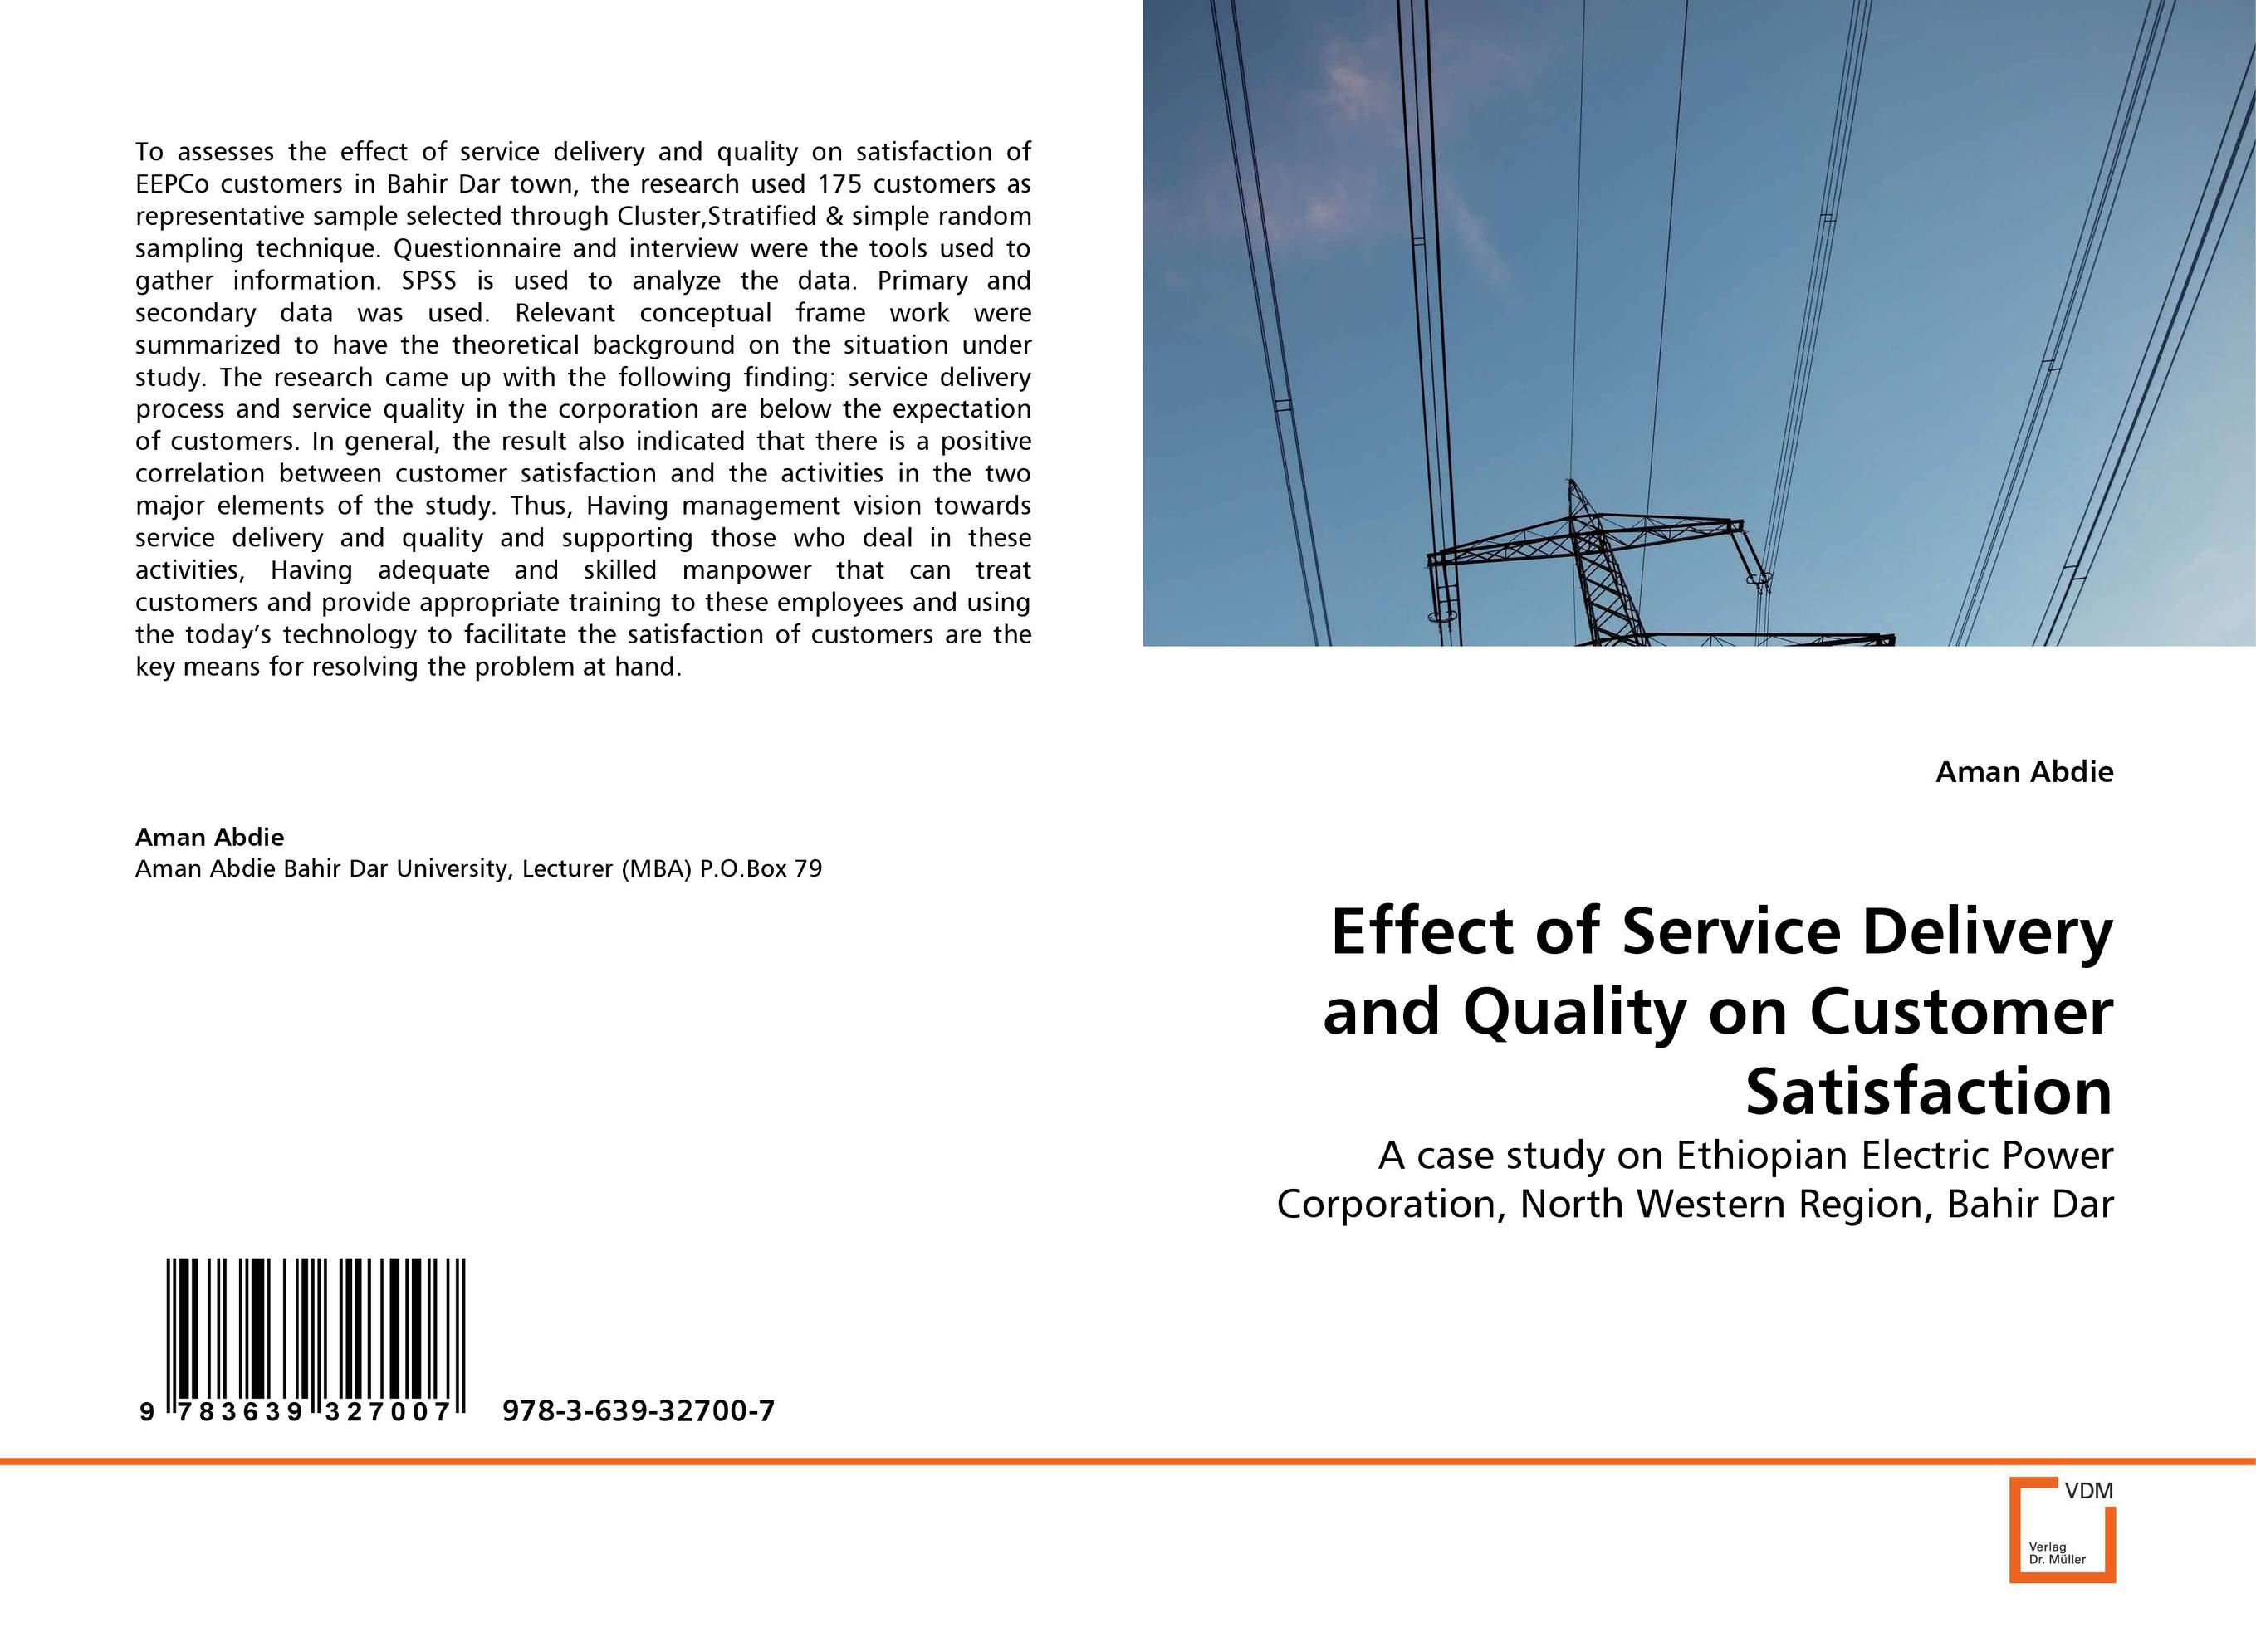 Effect of Service Delivery and Quality on Customer Satisfaction michel chevalier luxury retail management how the world s top brands provide quality product and service support